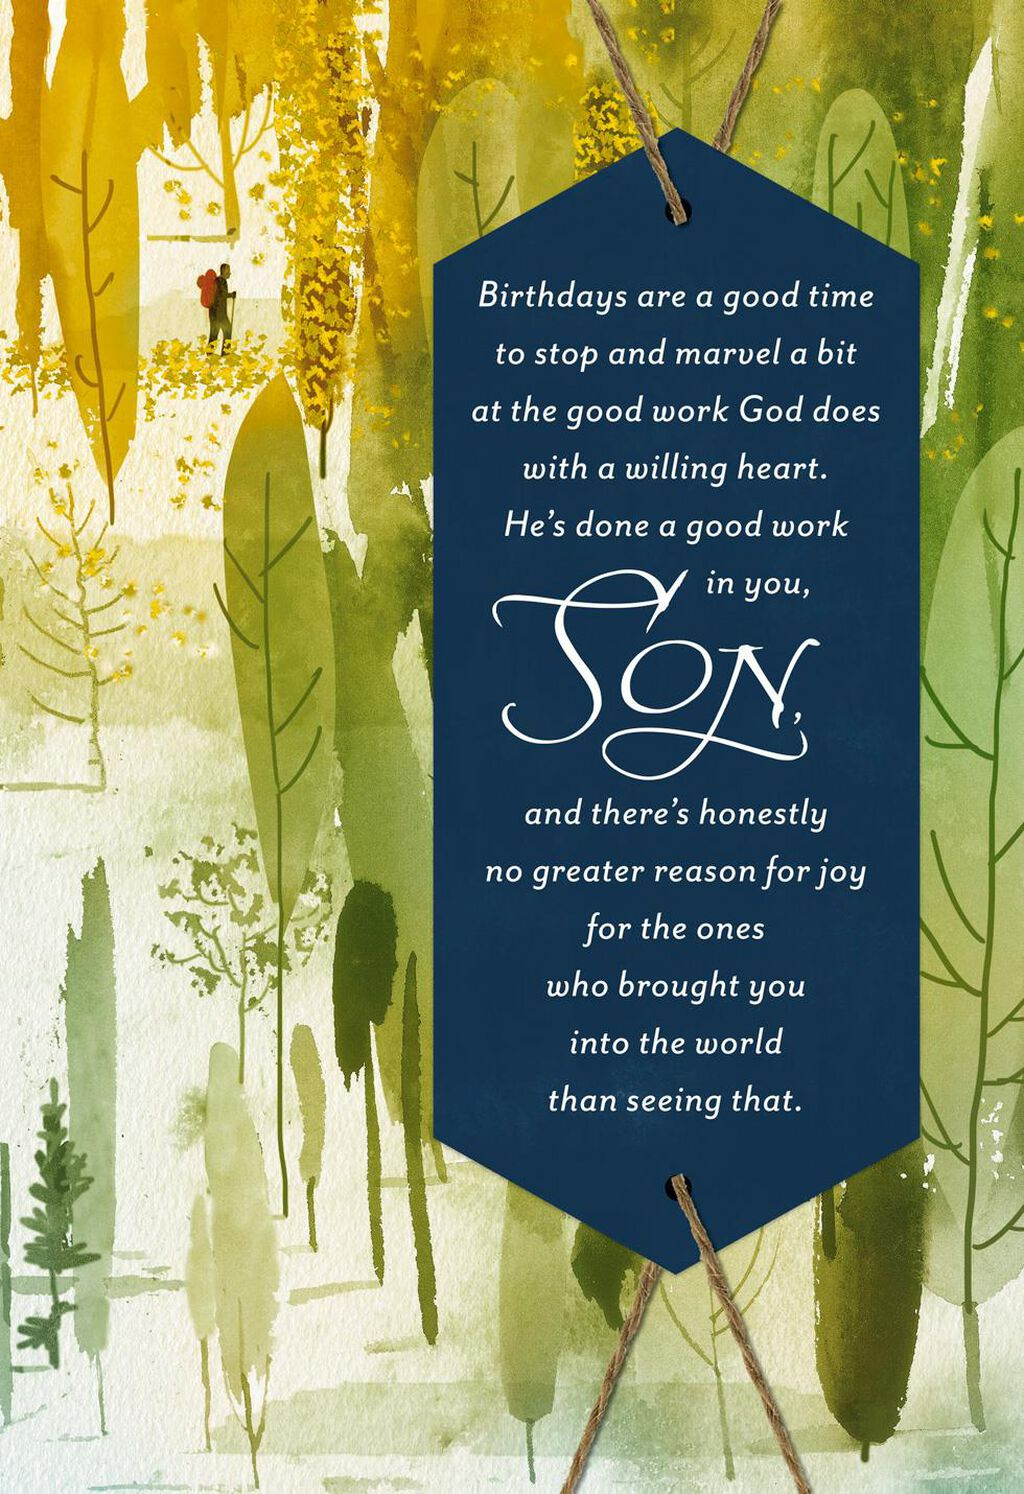 Hes Done Good Work In You Religious Birthday Card For Son